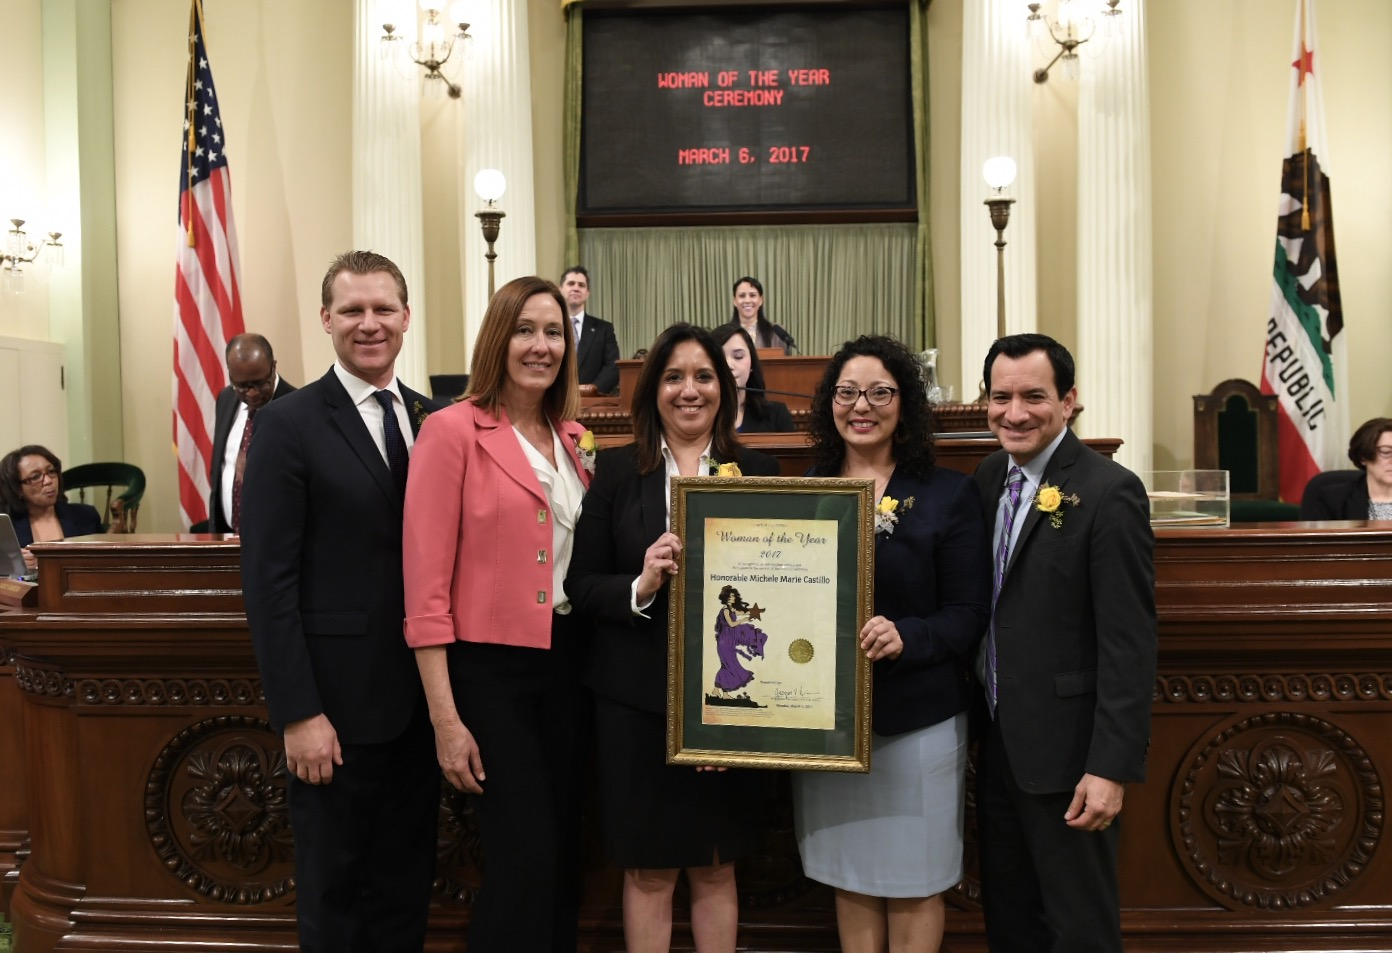 Assemblymember Irwin Honors Ventura County Superior Court Judge Michele Castillo as 2017 Woman of the Year